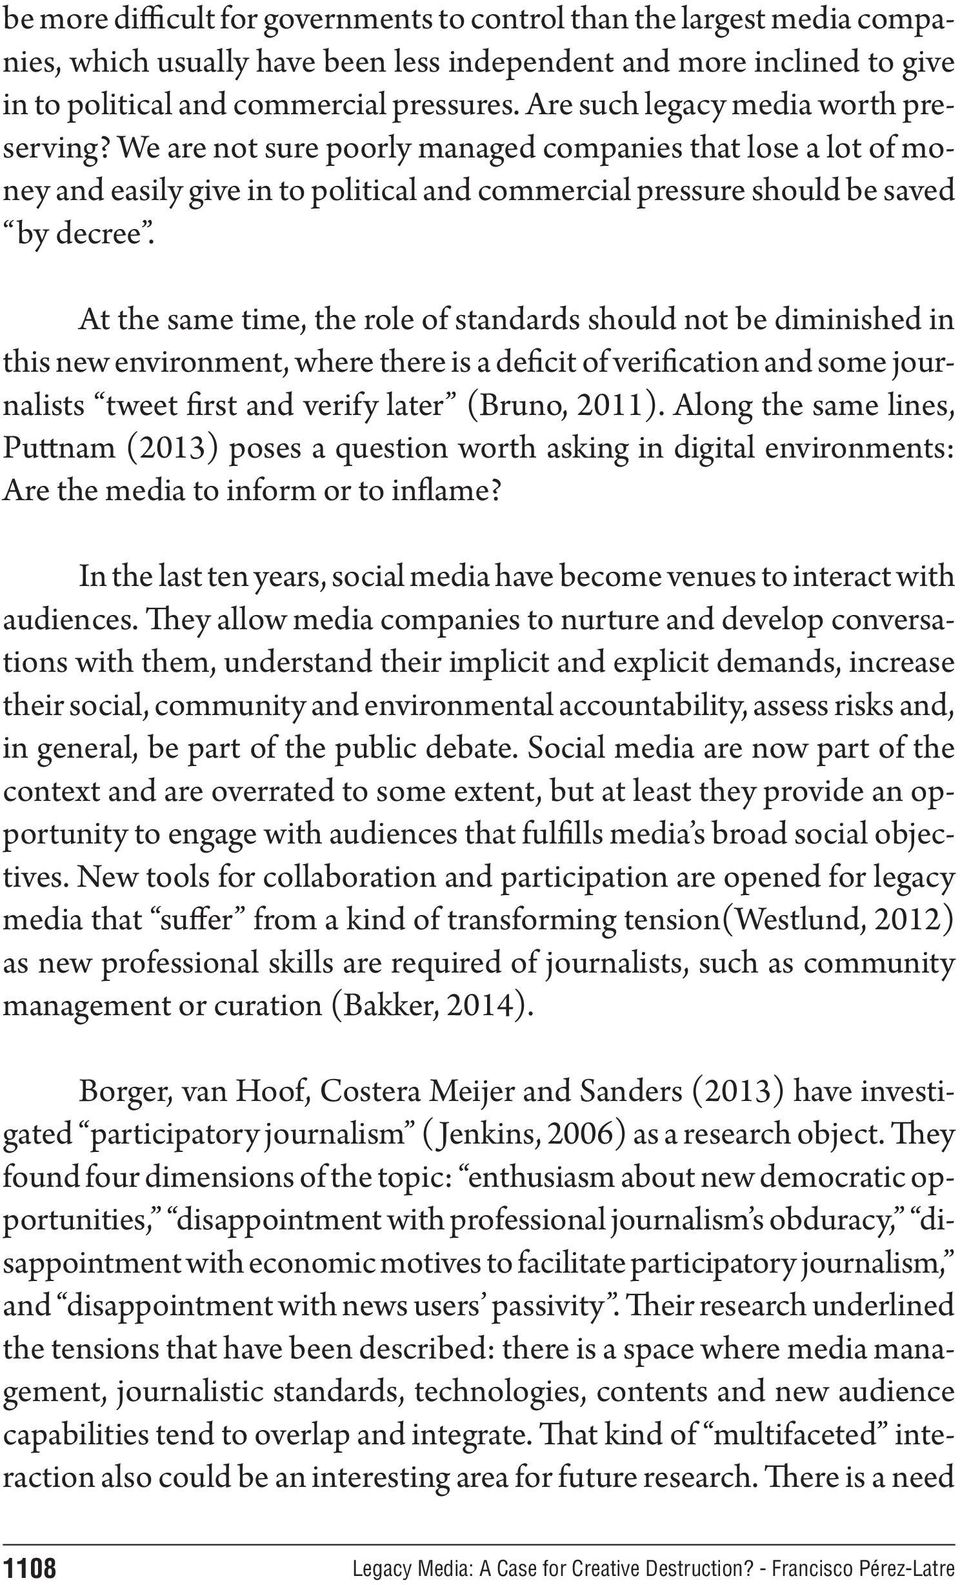 At the same time, the role of standards should not be diminished in this new environment, where there is a deficit of verification and some journalists tweet first and verify later (Bruno, 2011).